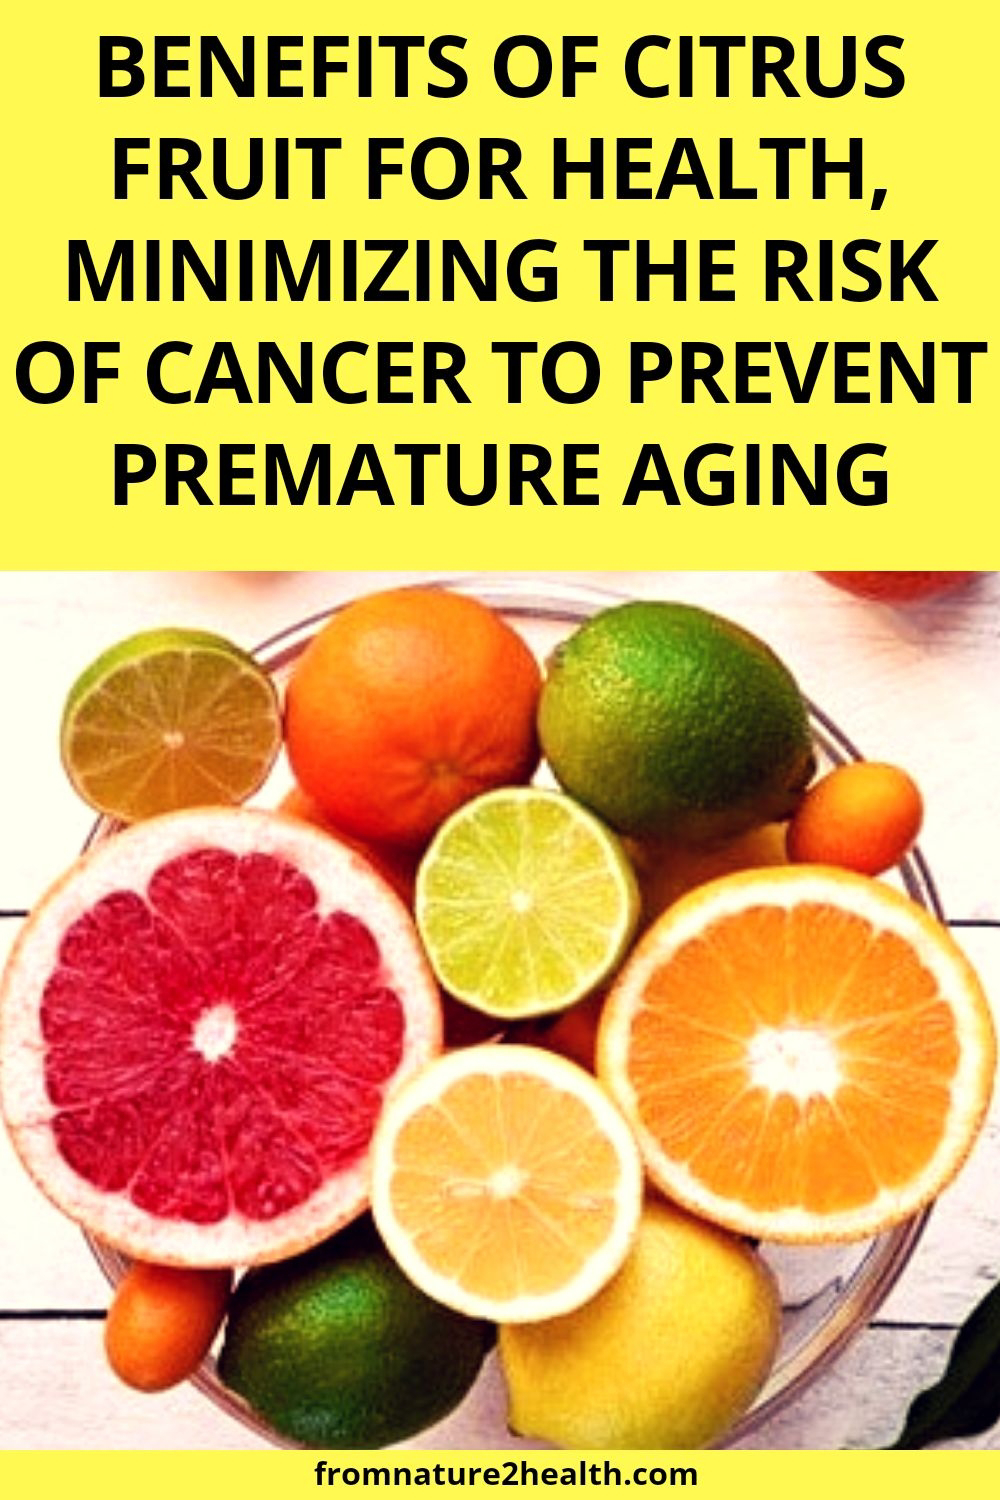 Benefits of Citrus Fruit for Health, Minimizing the Risk of Cancer to Prevent Premature Aging